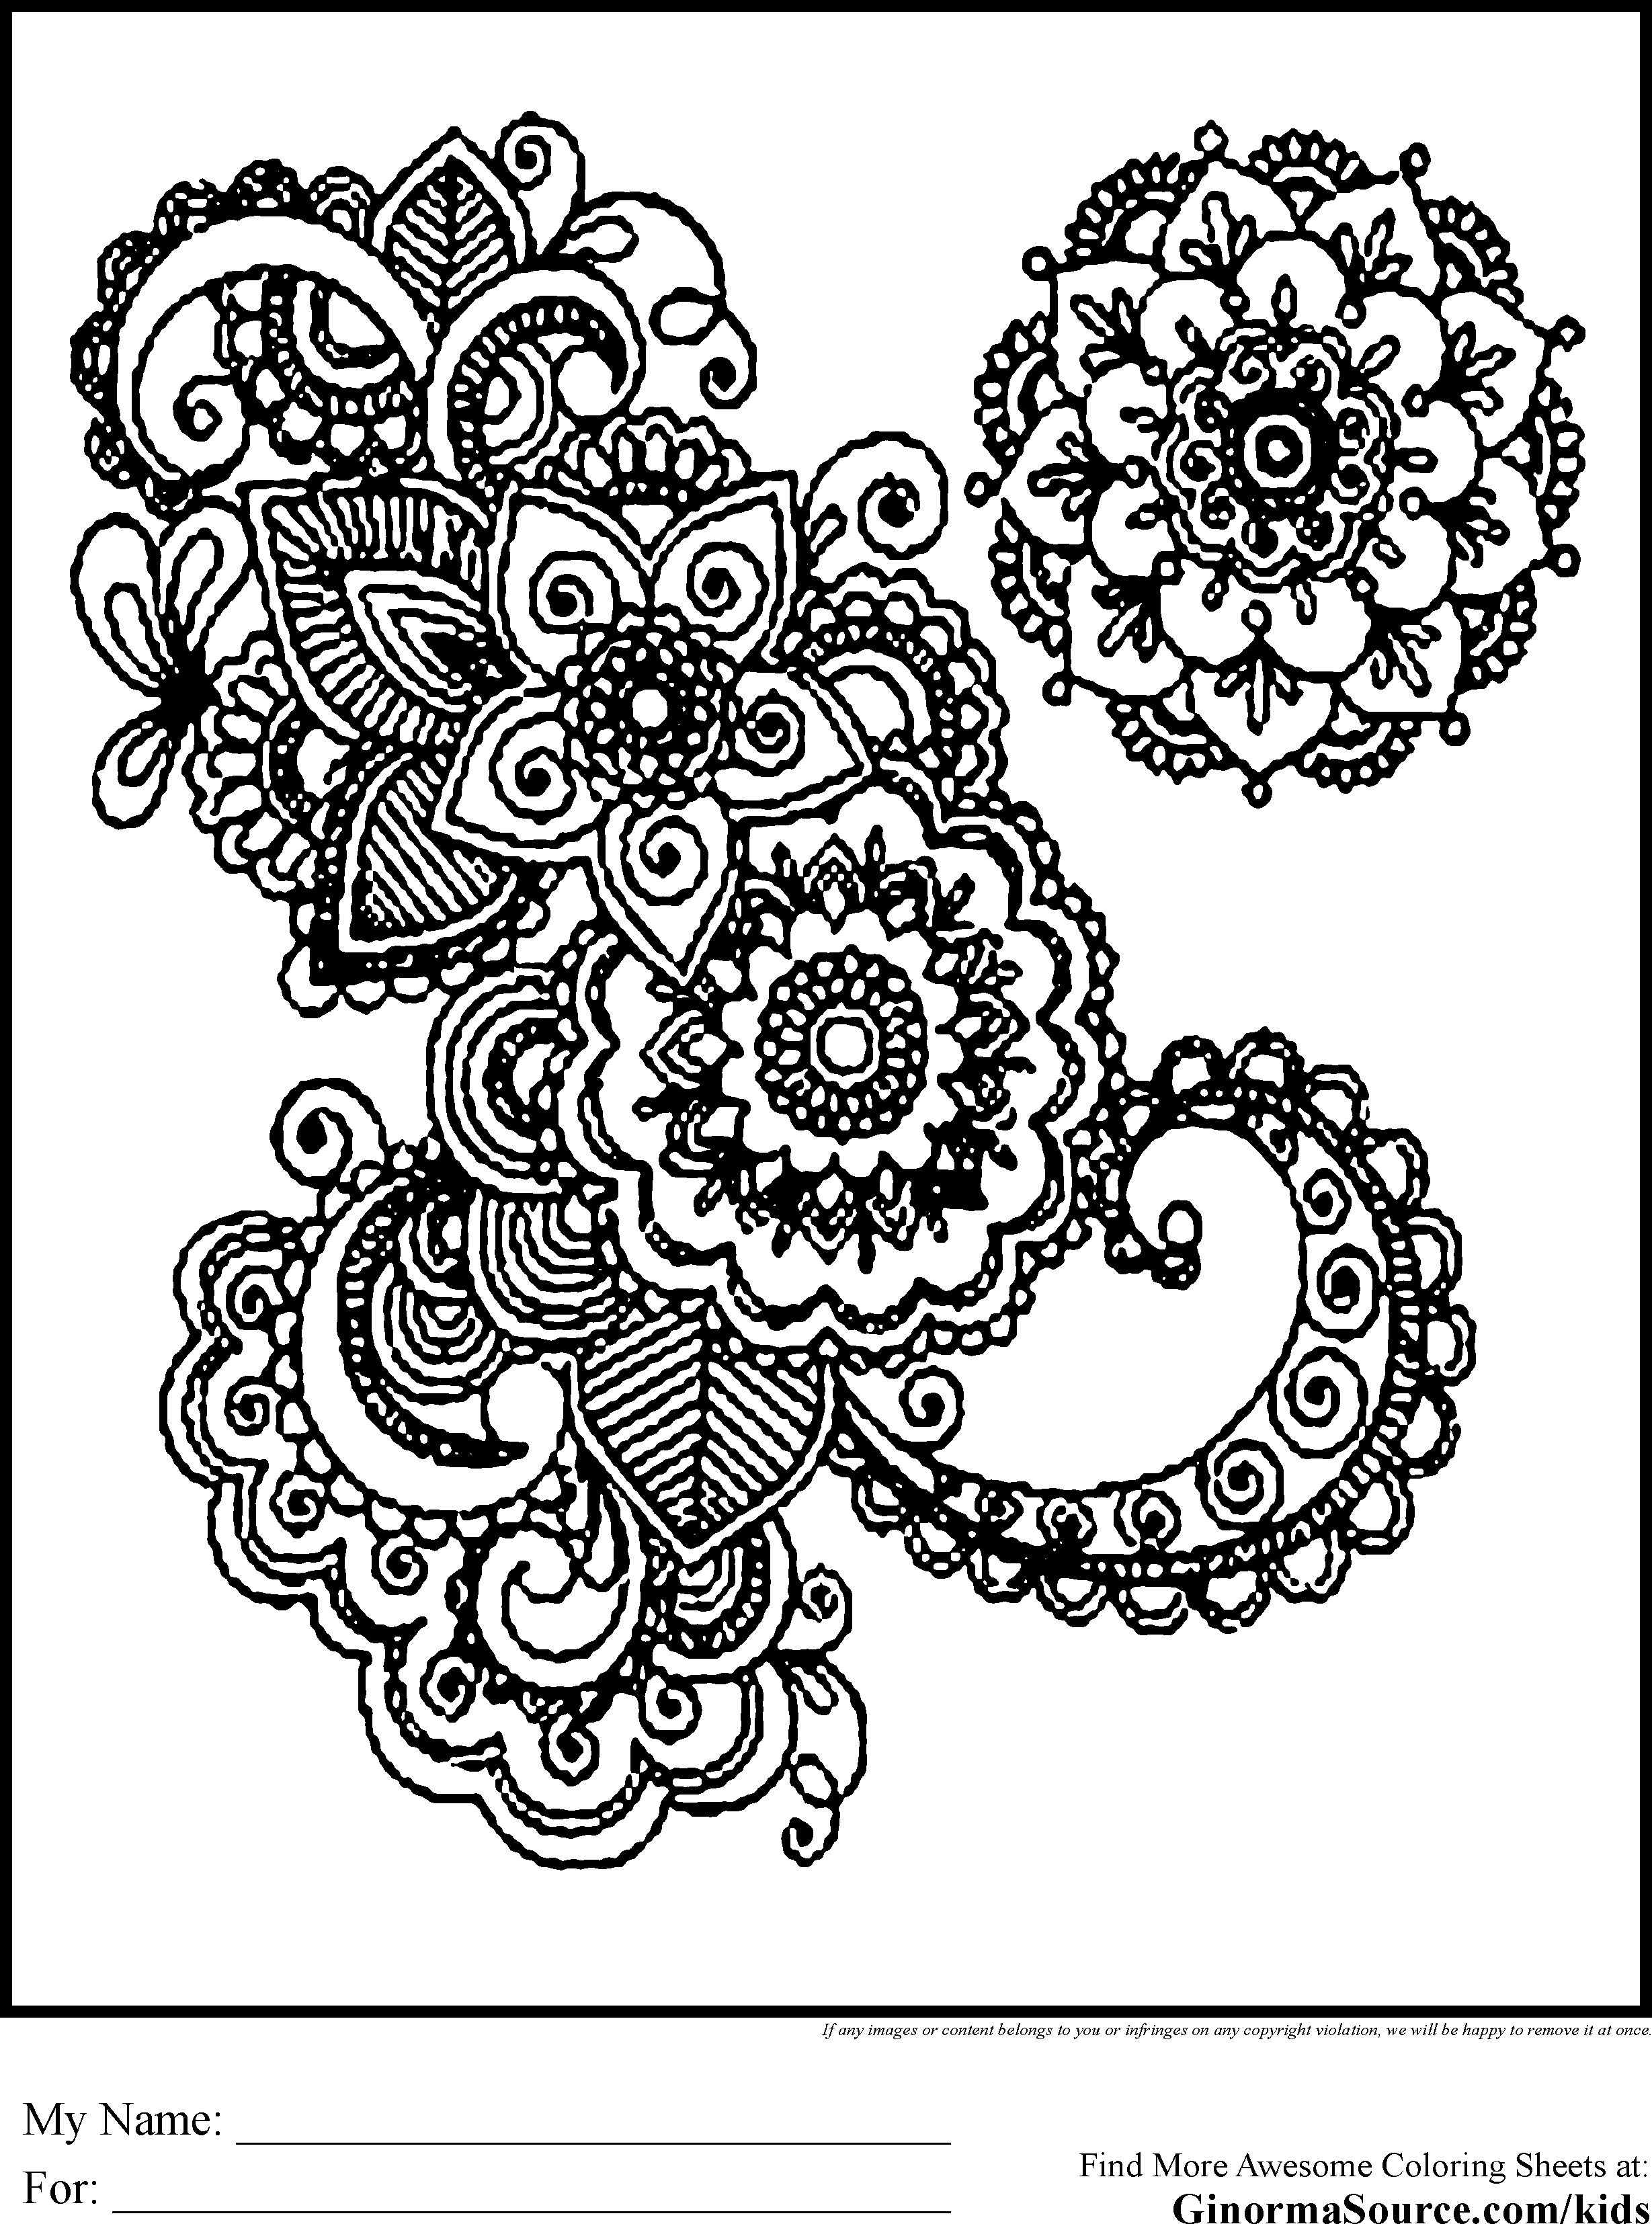 kids coloring pages intricate designs - photo#41